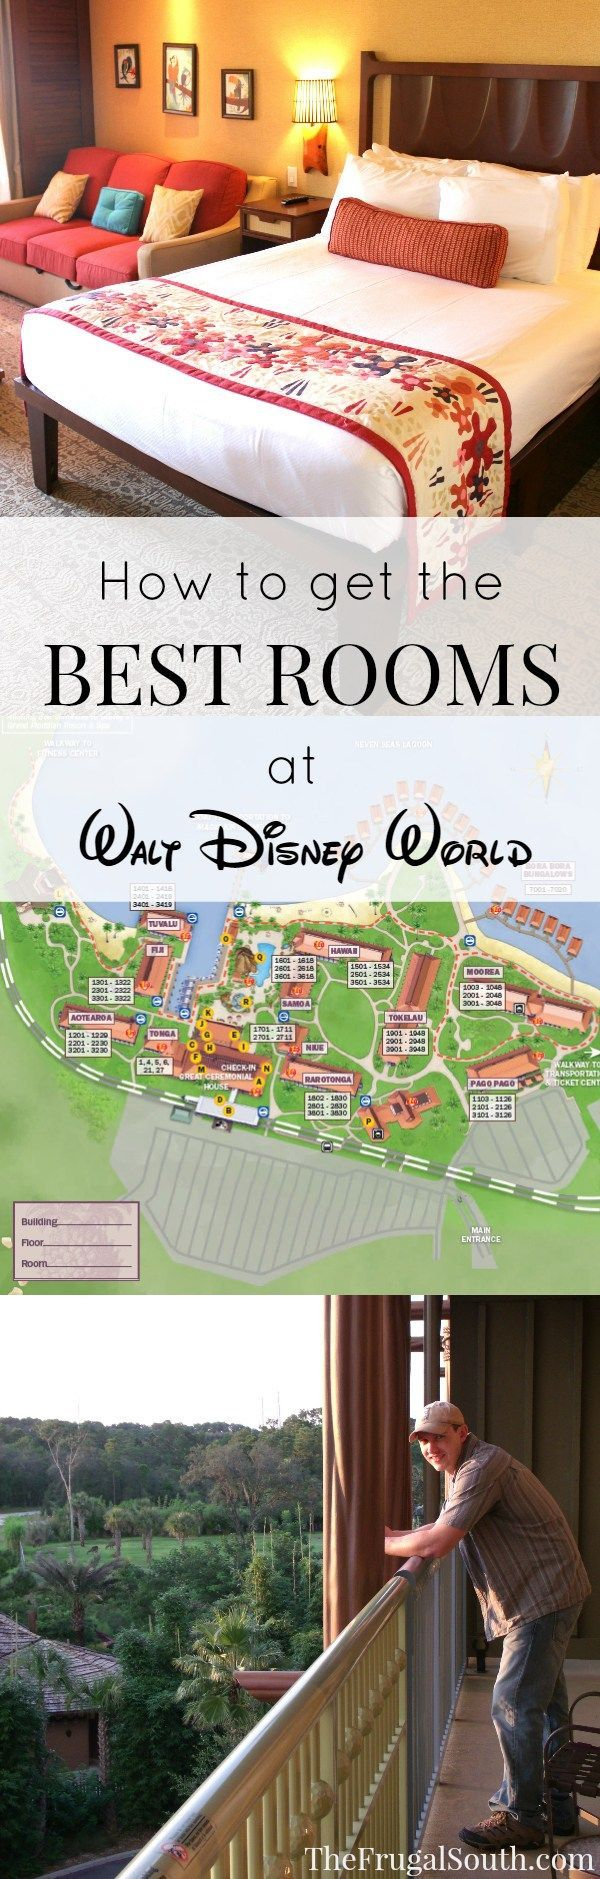 After MANY trips to Disney World over the years, I think I've finally mastered the art of getting the room that I want located where I want it! Disney Worl